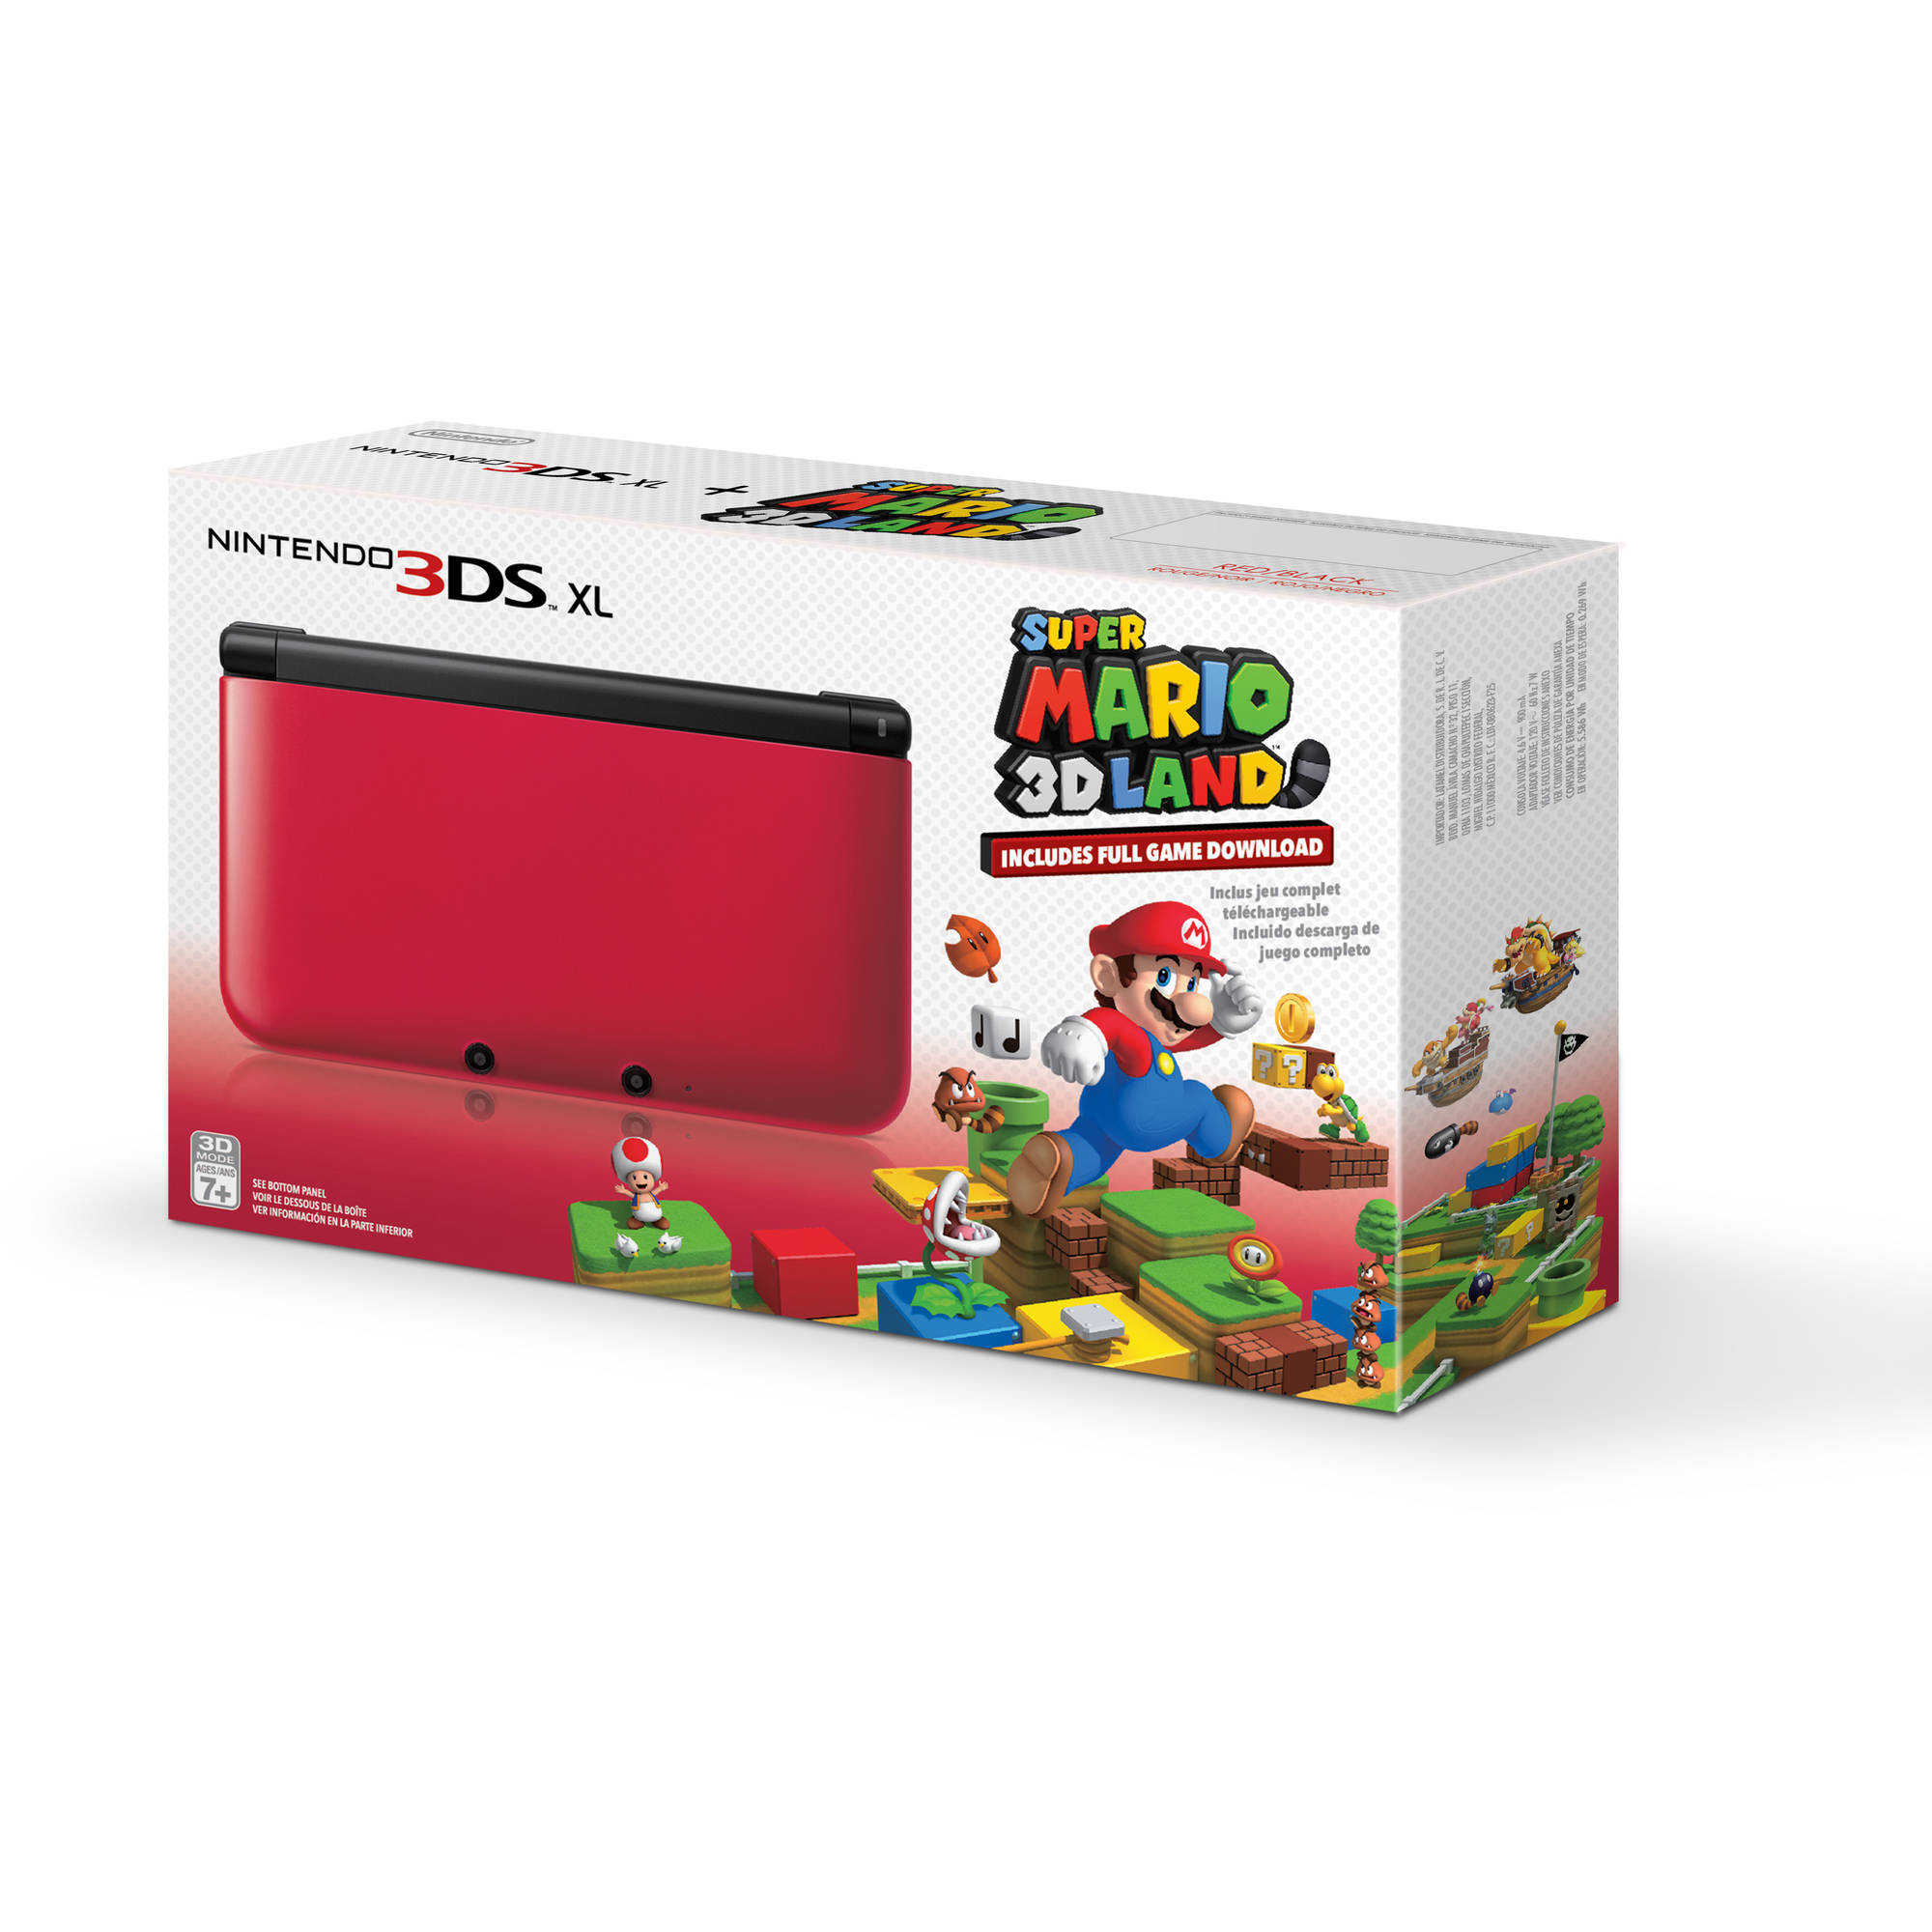 Nintendo 3ds Xl Handheld Console With Super Mario 3d Land Red